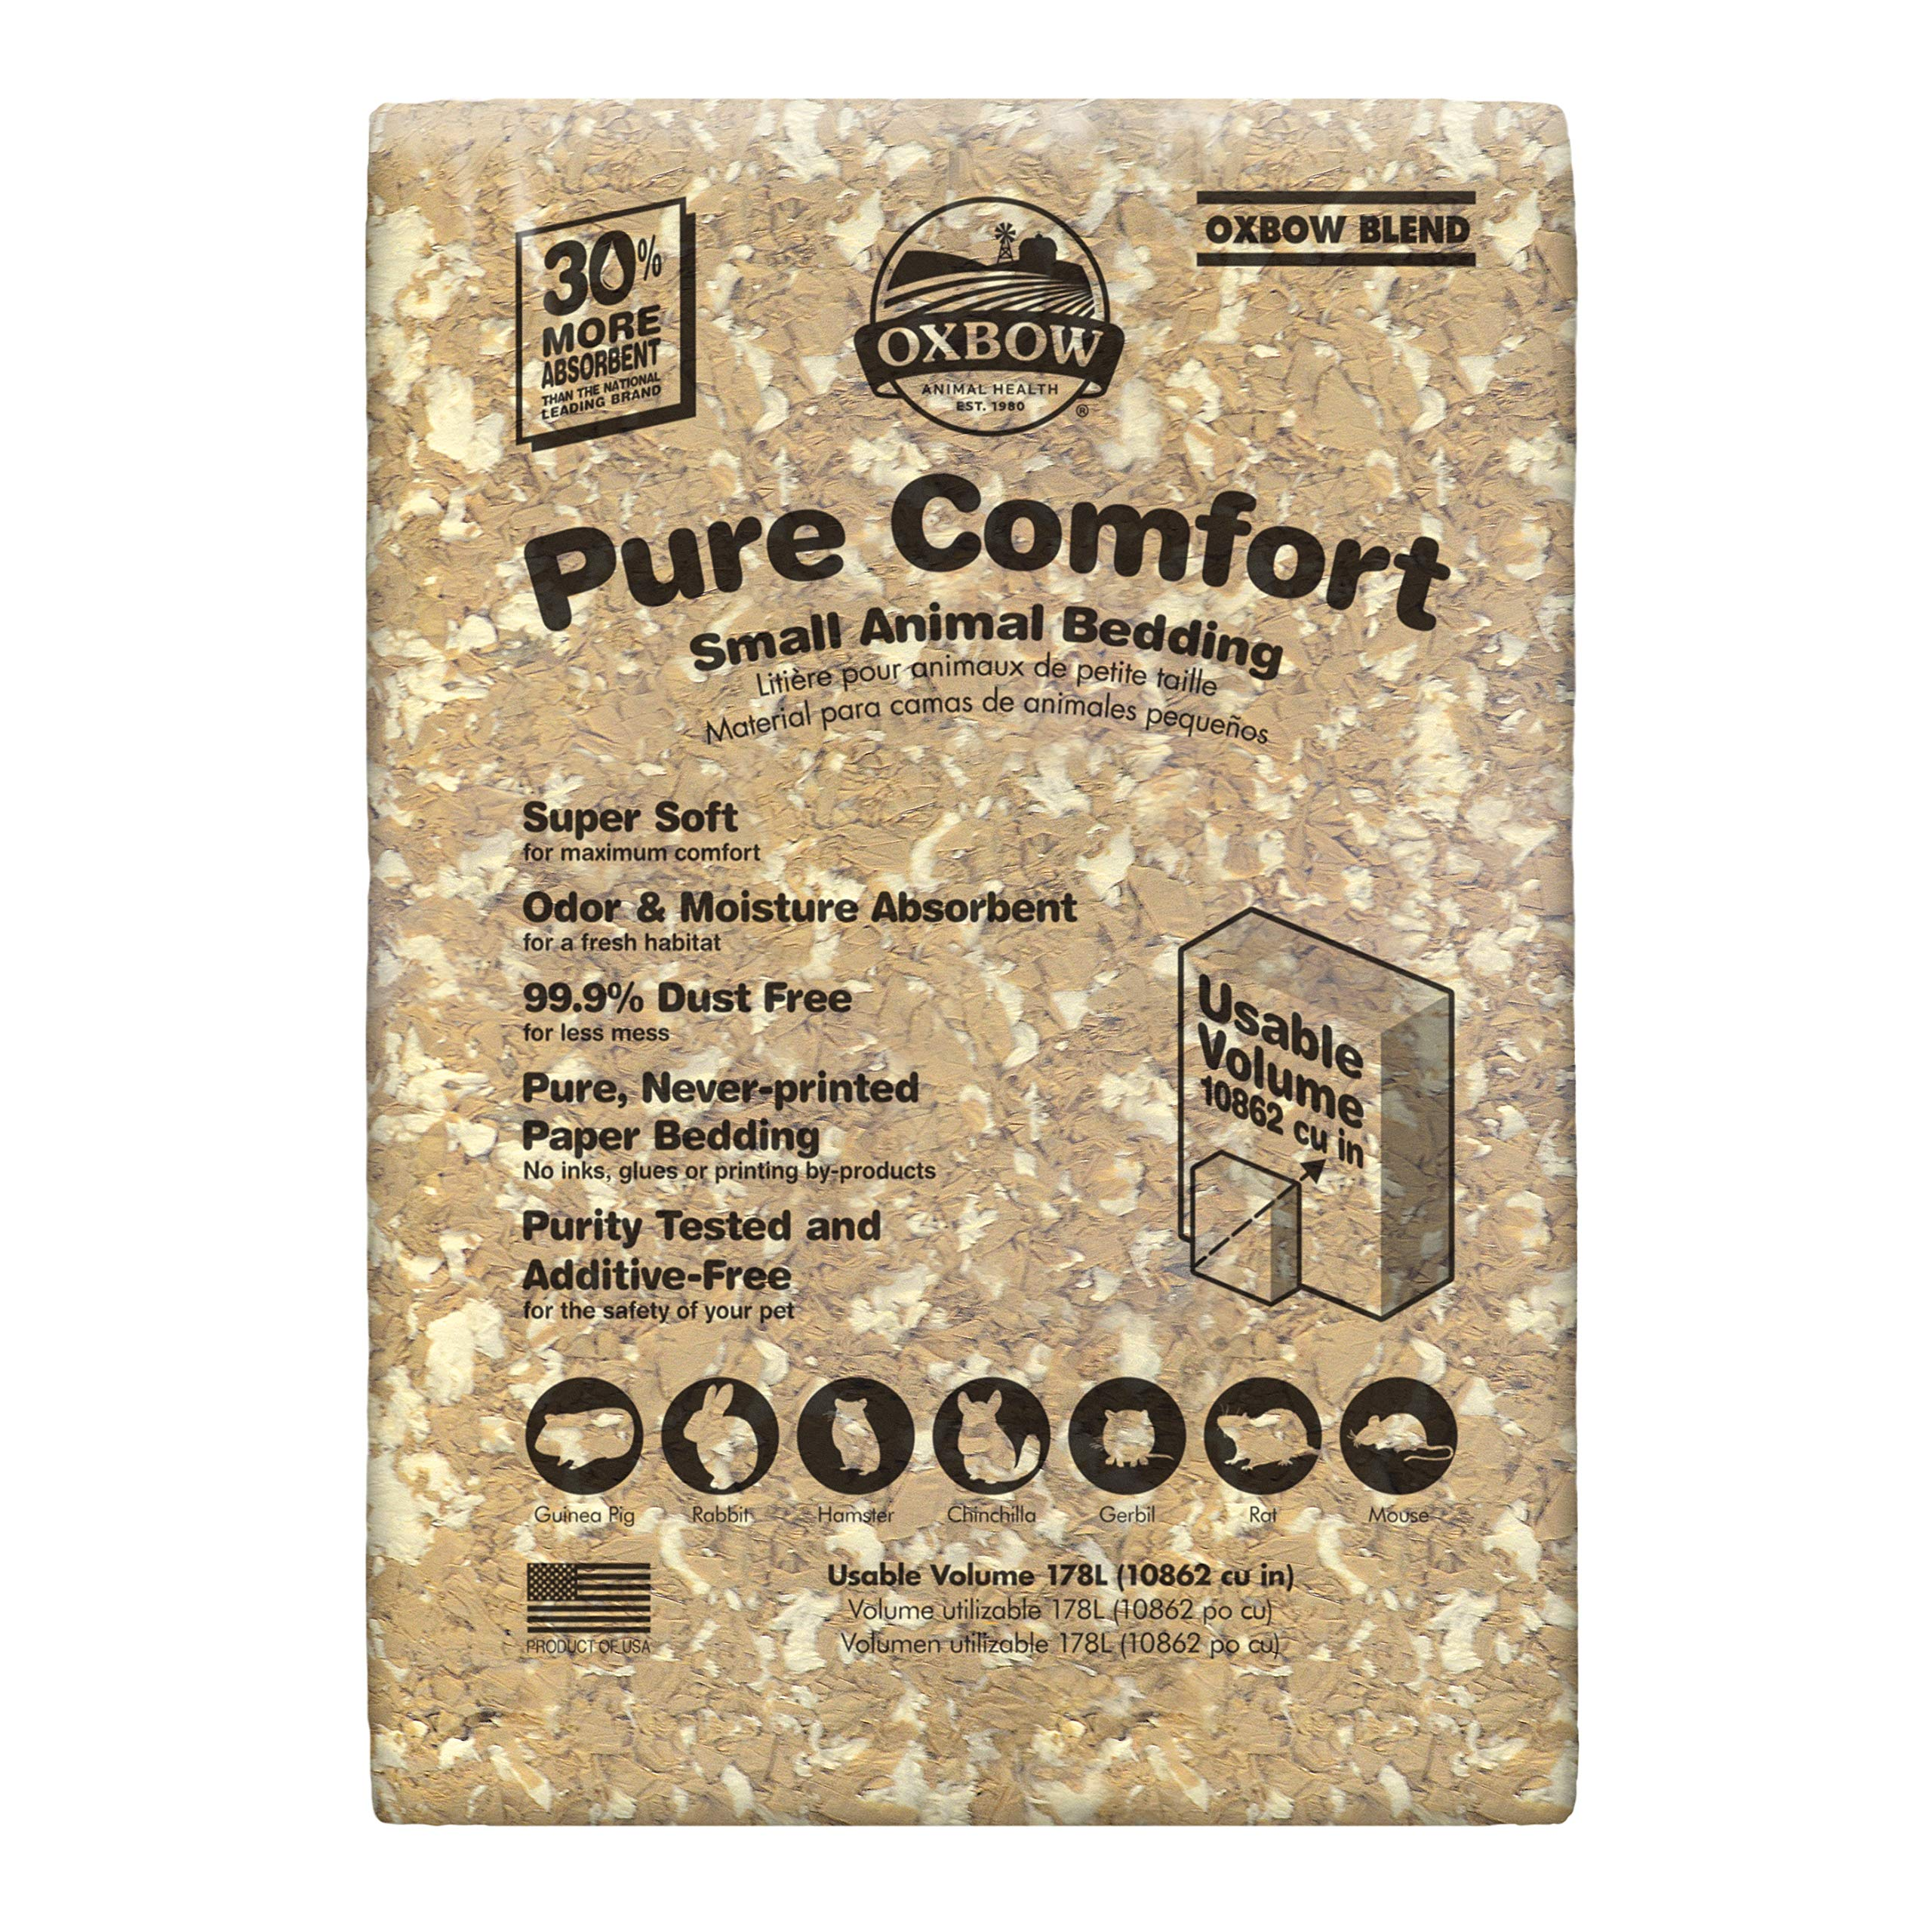 Oxbow Pure Comfort Small Animal Bedding - Odor & Moisture Absorbent, Dust-Free Bedding for Small Animals